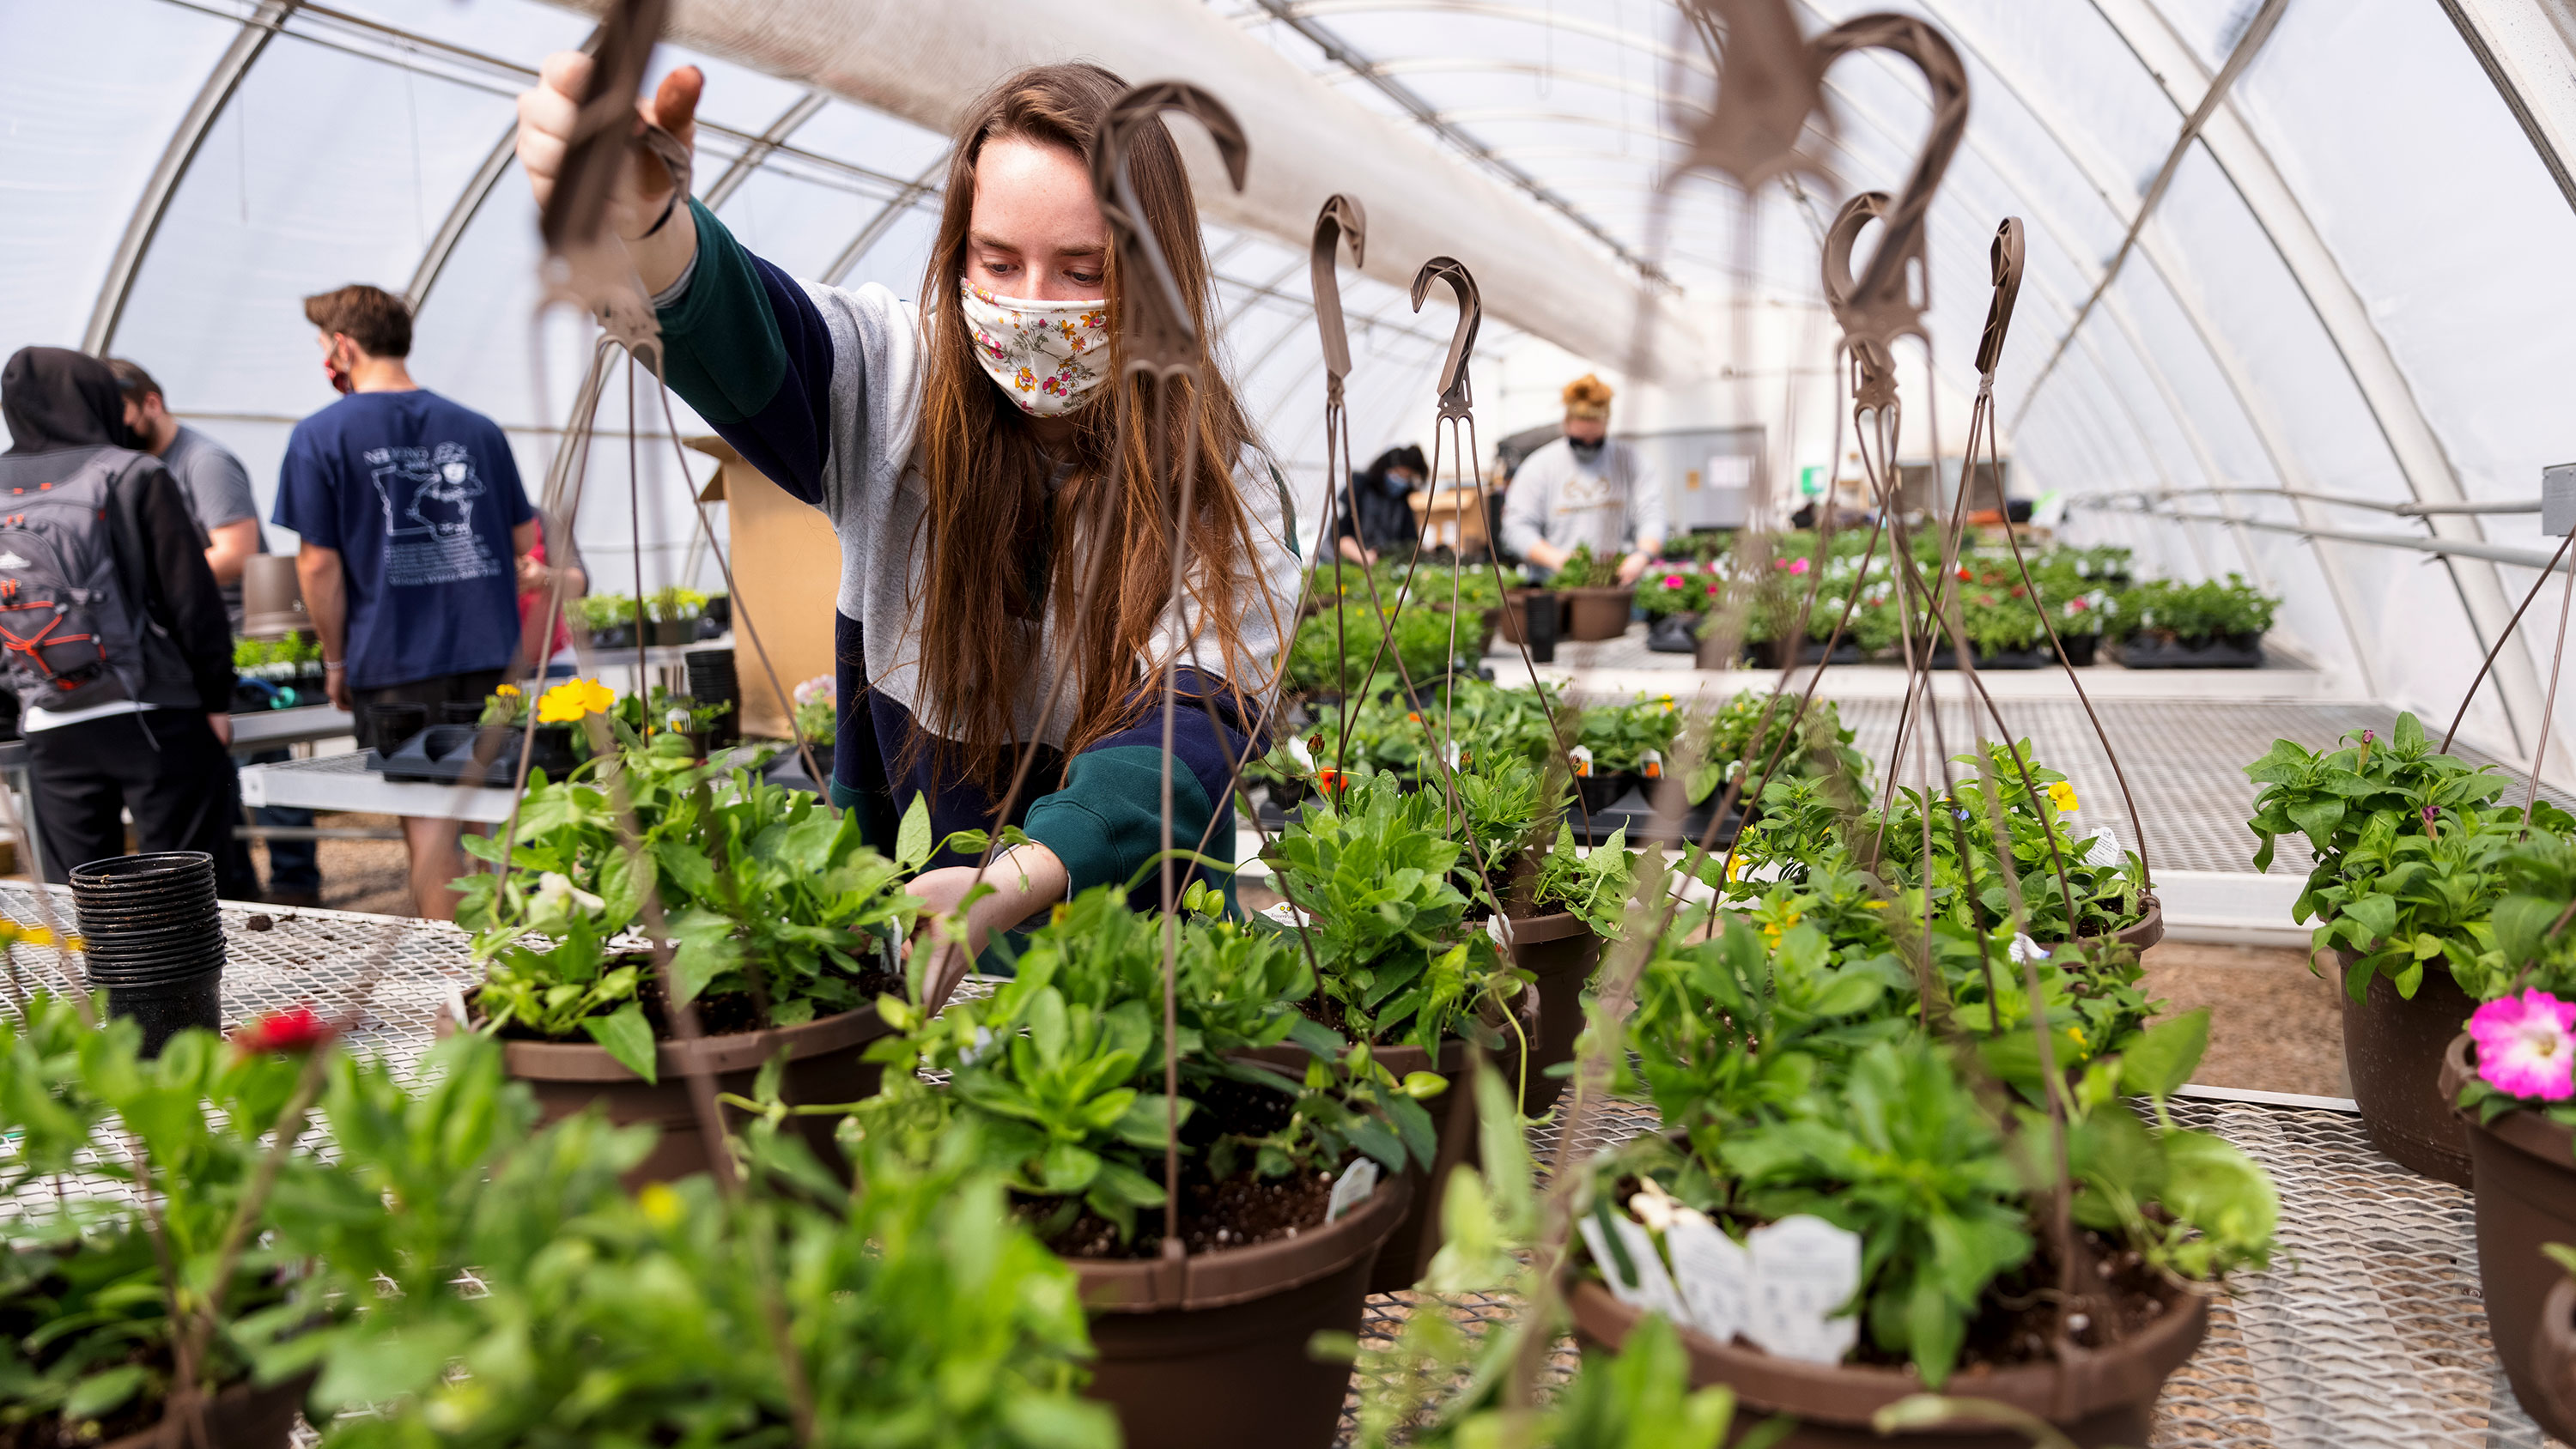 Taylor Cammack moves a finished hanging basket onto the rack so they can be watered during a club work session. Members of the horticulture club prepare plants in the greenhouses on east campus. The plants will be sold at their annual spring sale April 28–30. Craig Chandler | University Communication